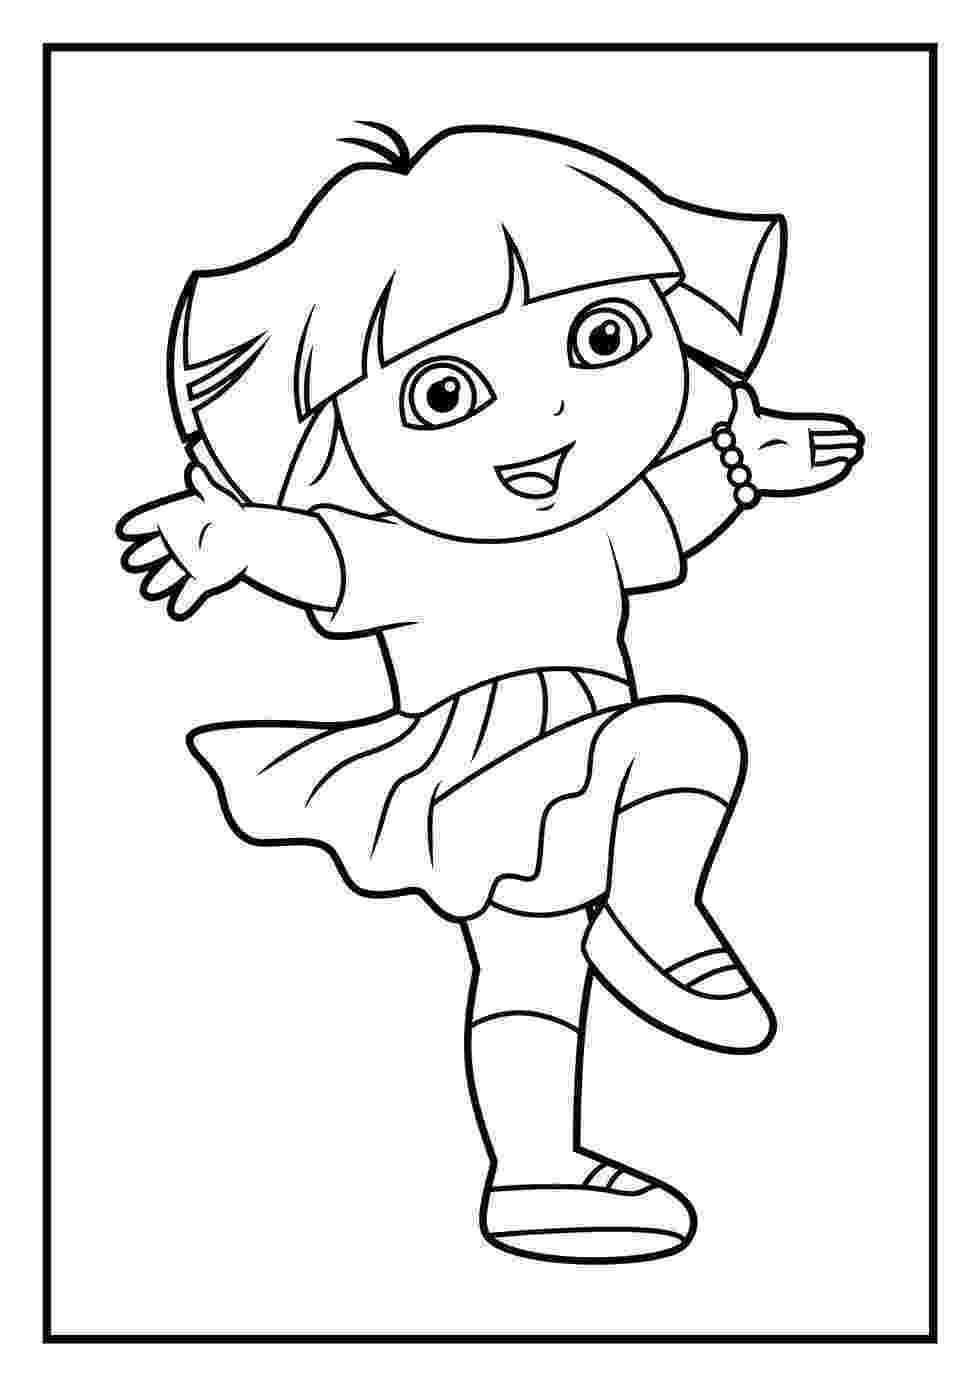 dora the explorer coloring dora coloring pages backpack diego boots swiper print explorer the dora coloring